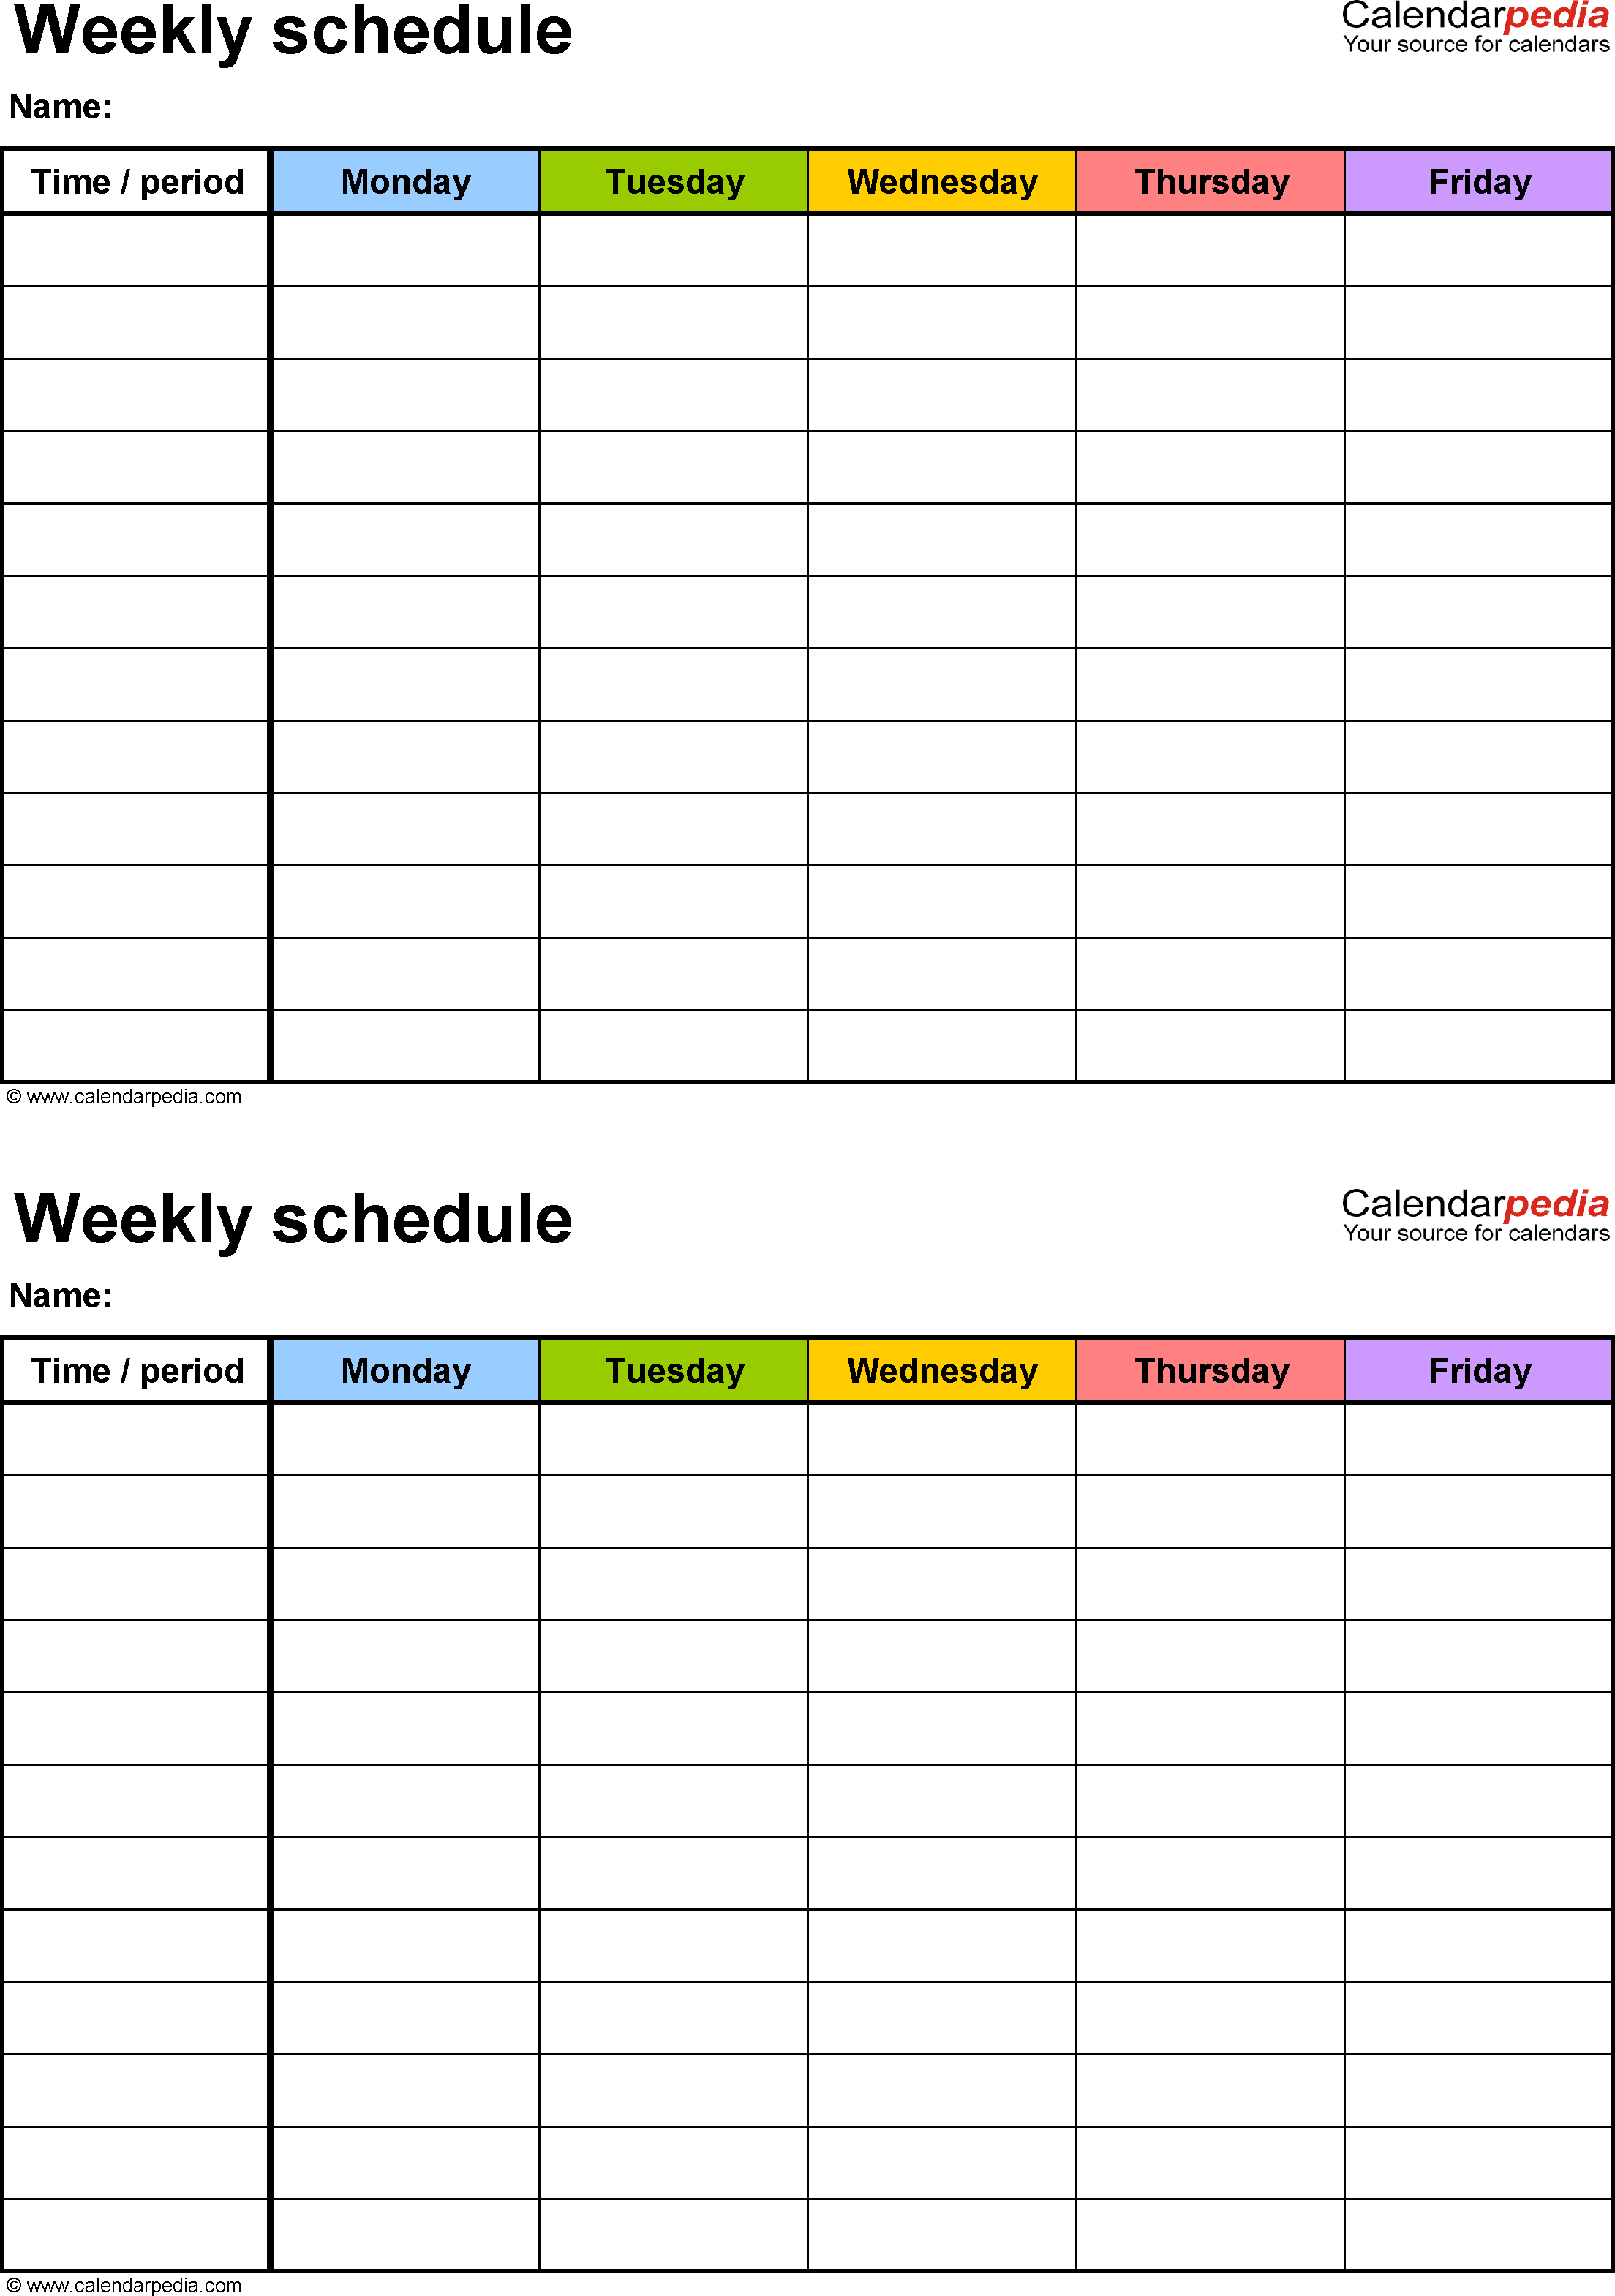 Free Weekly Schedule Templates For Word - 18 Templates throughout 5 Day Calendar Template Free